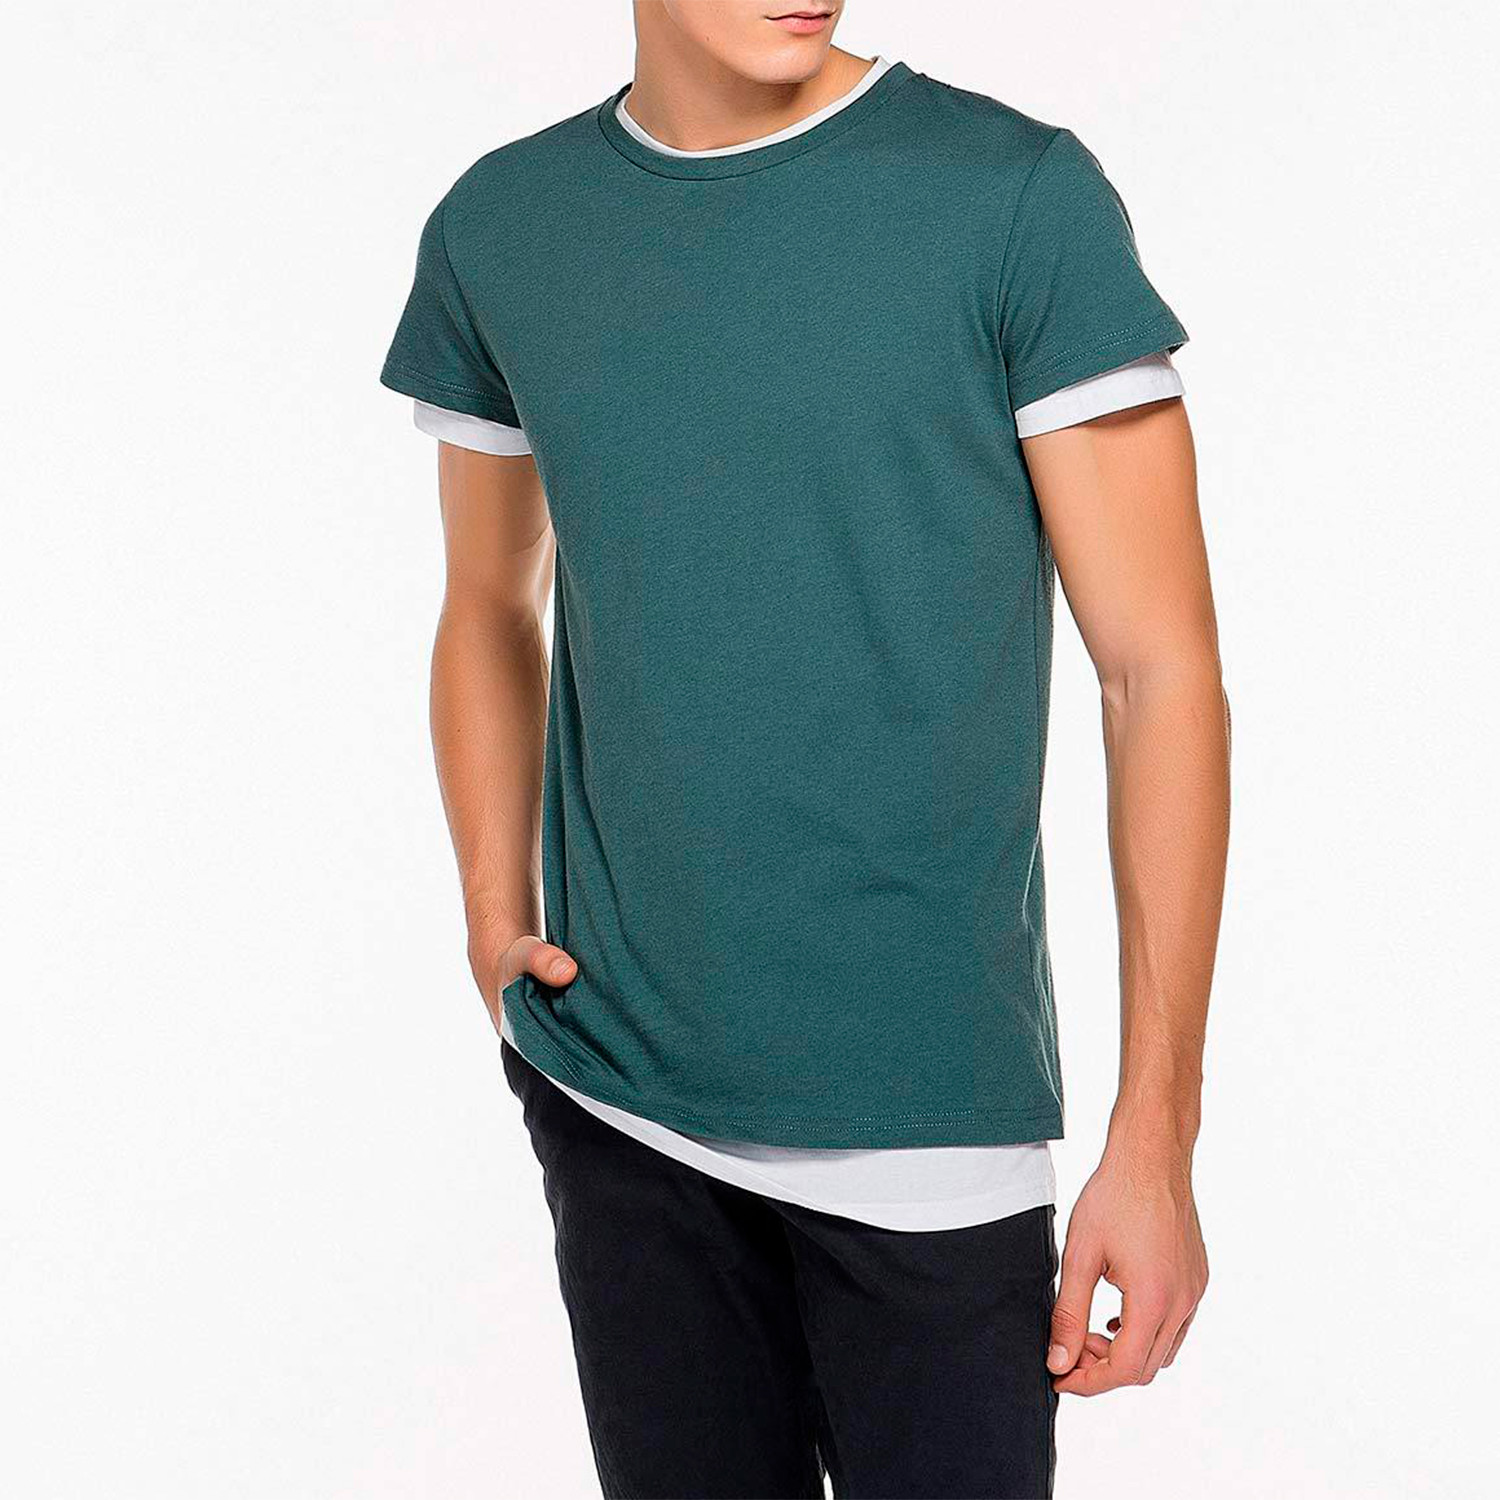 Double Crew Neck Wool Blend T-Shirt // Petrol (S) - The